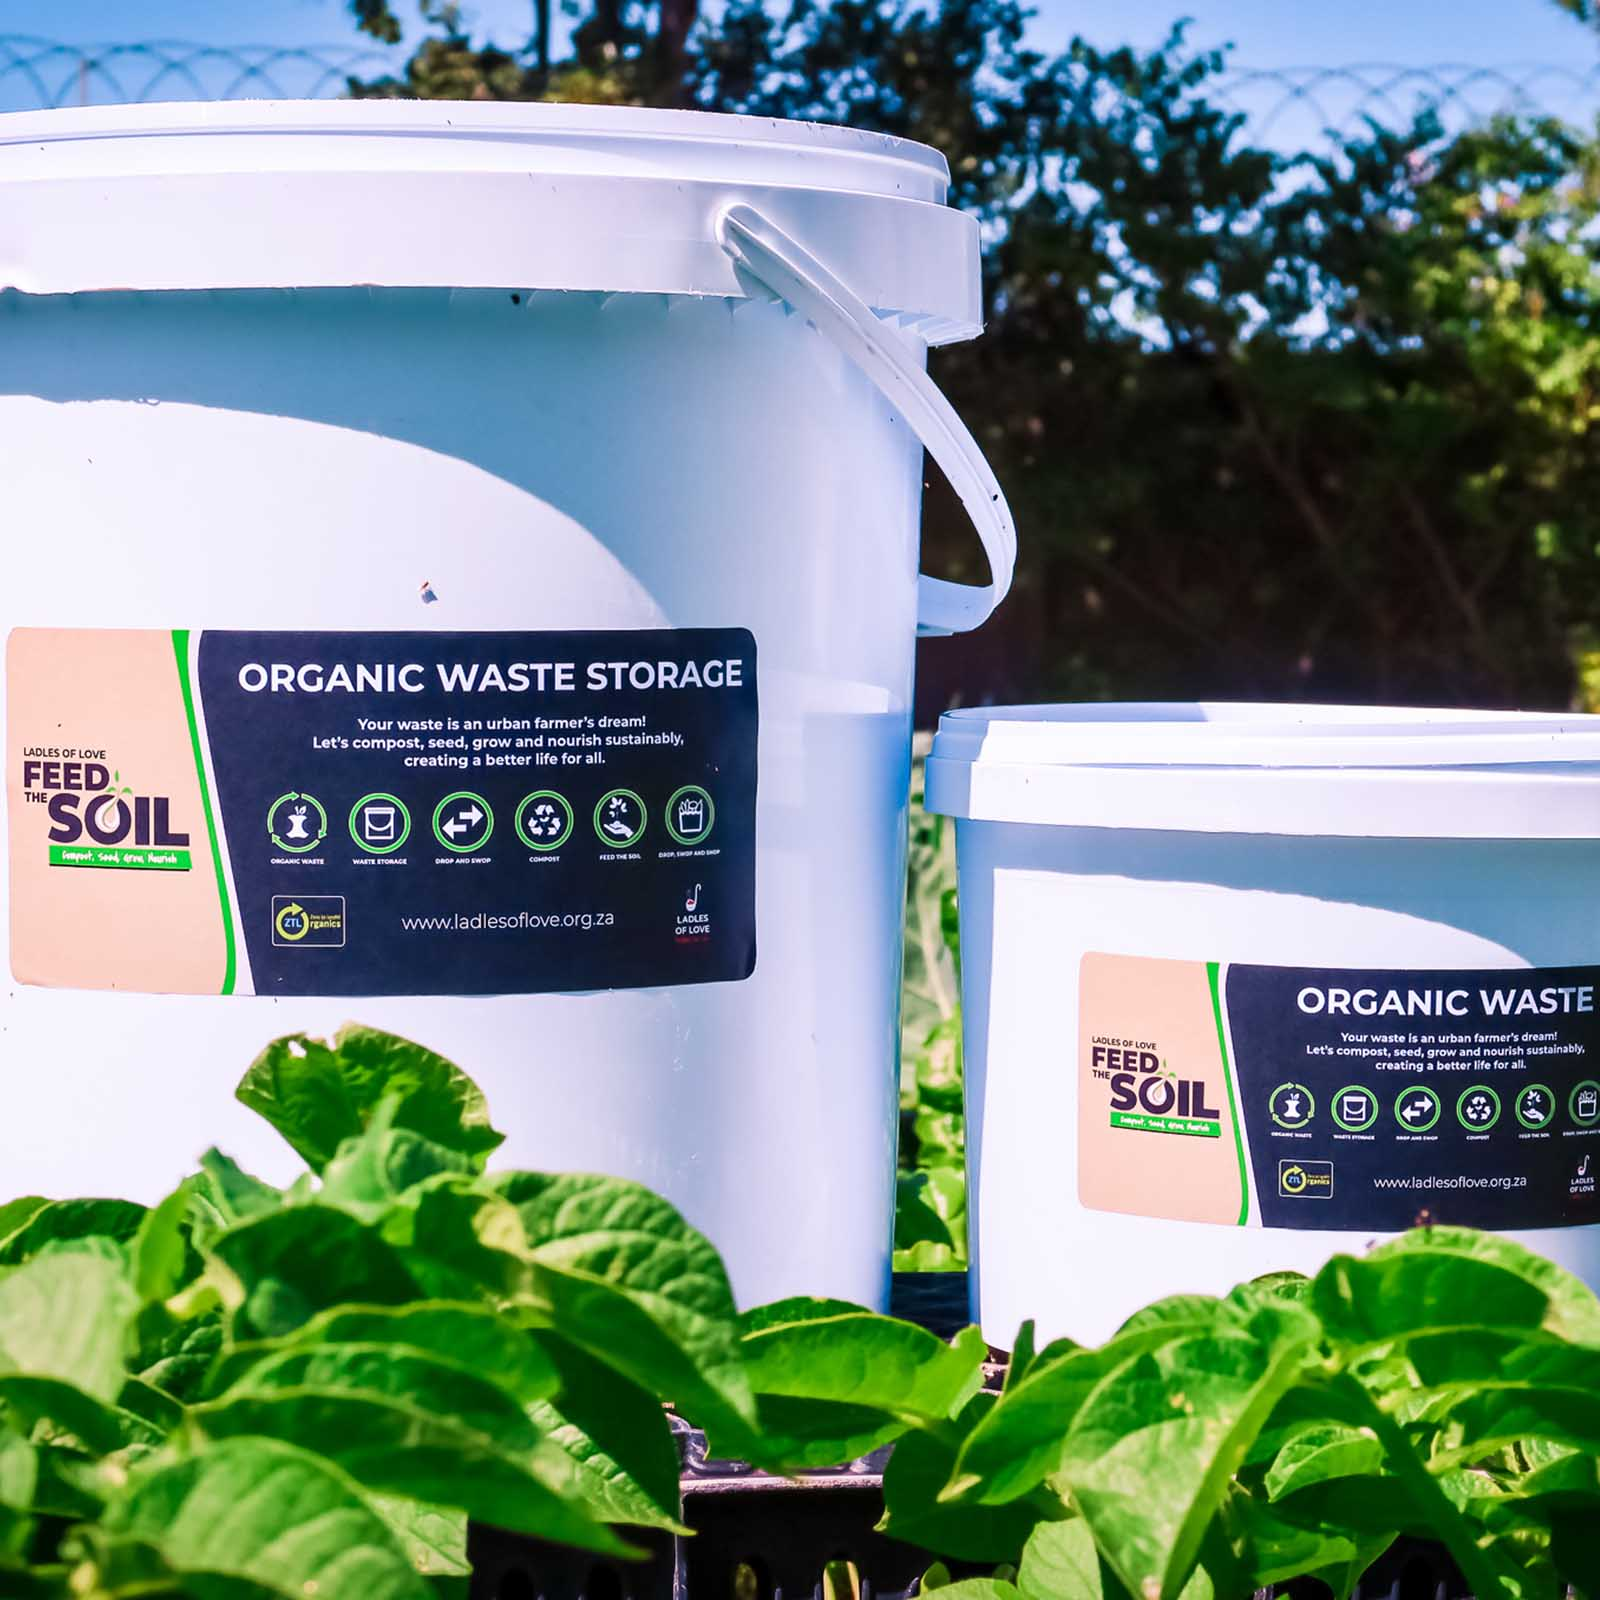 two feed the soil waste kits to collect organic waste to help implement and develop urban farming for sustainable farming charities